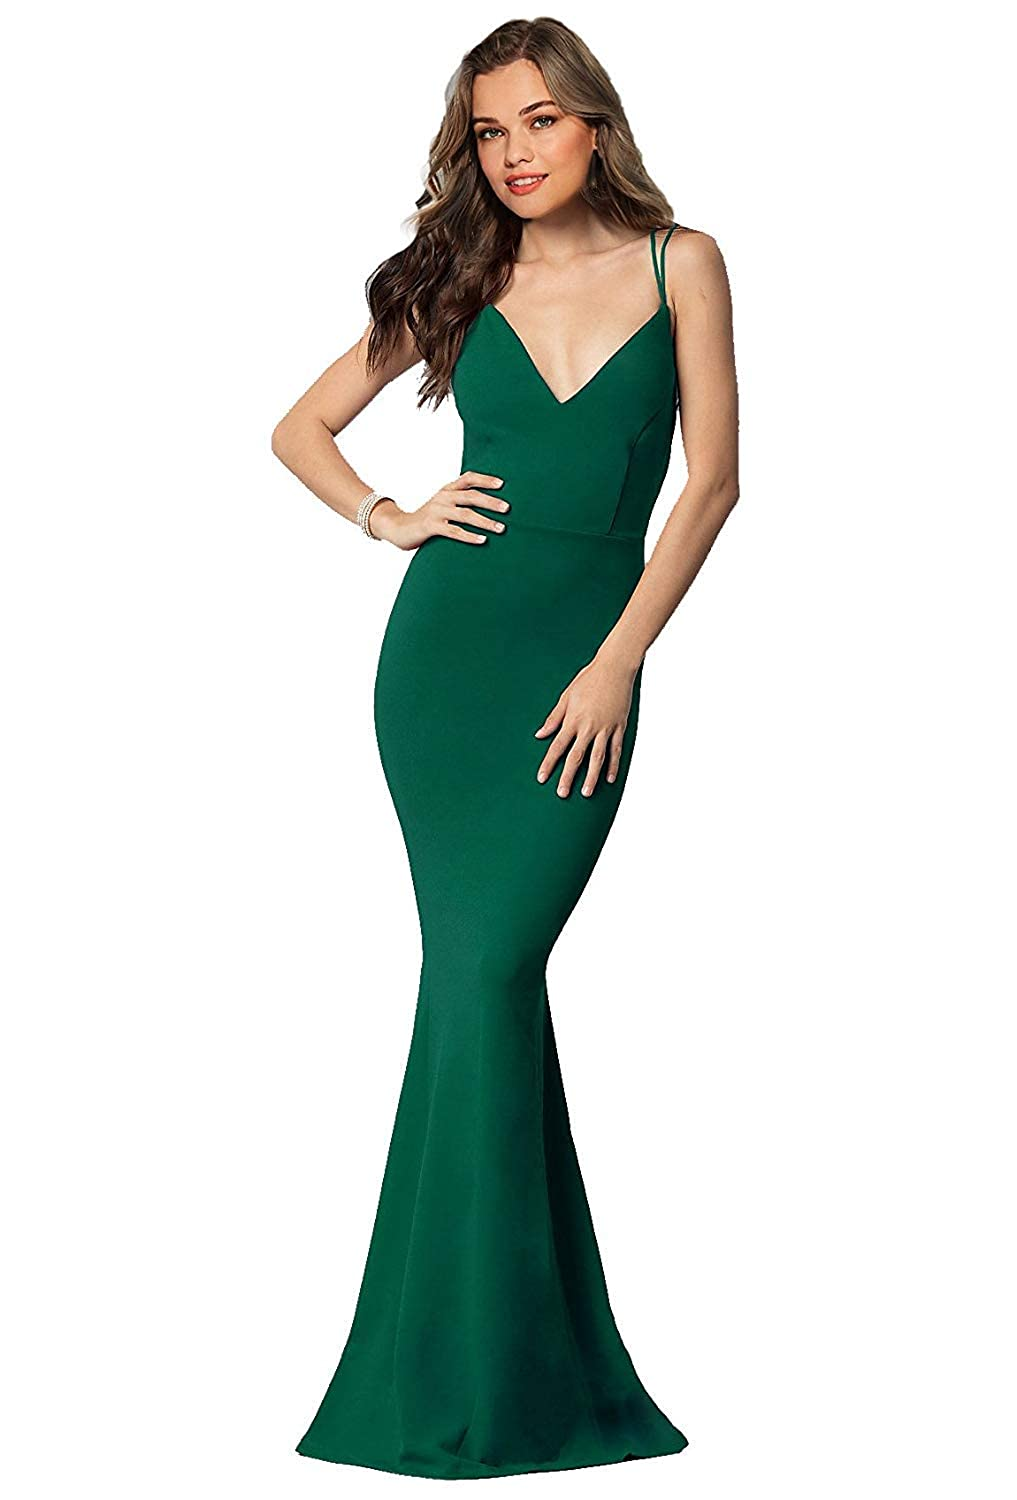 Emerald Green Sulidi Women's Long Sexy Mermaid Prom Dresses Backless Evening Formal Party Ball Gowns